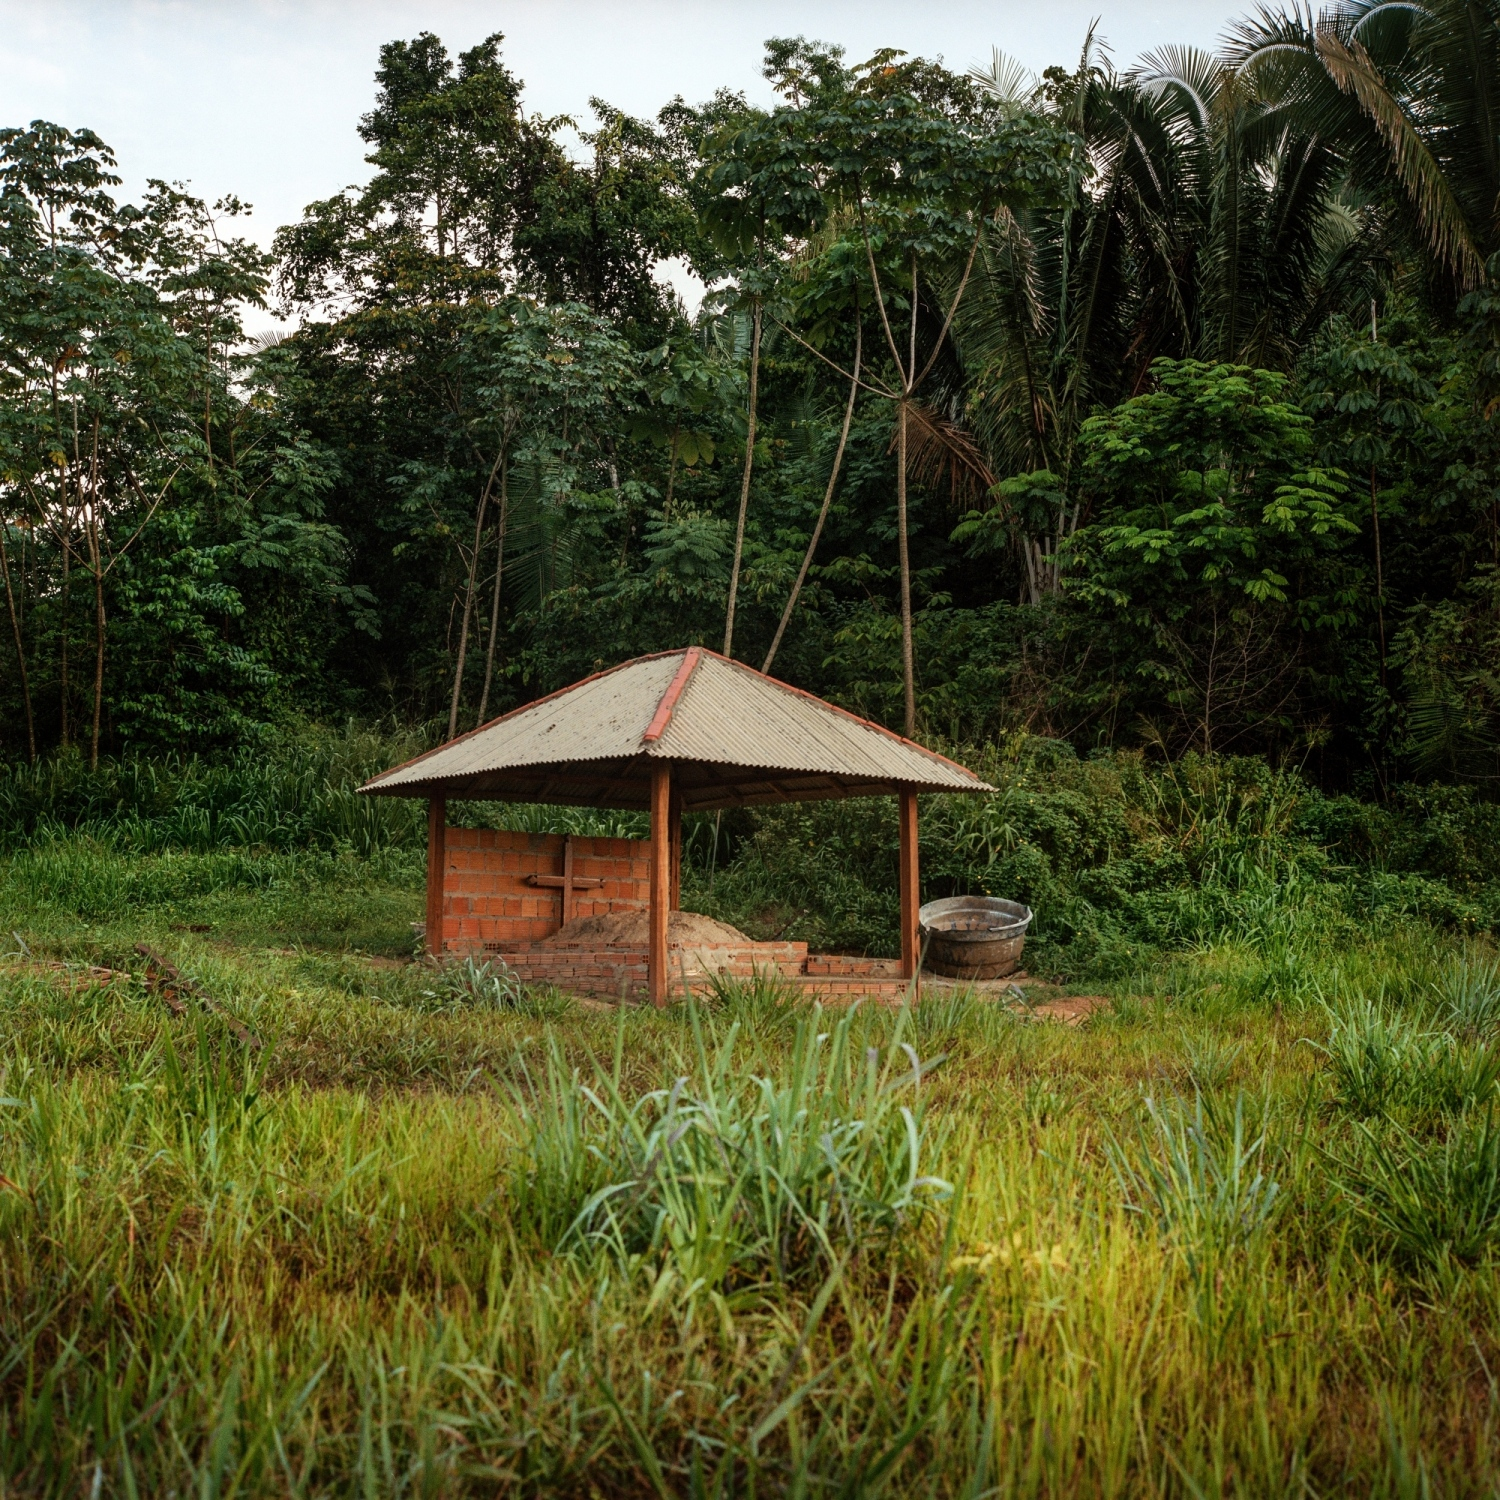 "The tomb of Jariel Juruna in the village of Mïratu. Jarliel drowned on October 26, 2016 at the age of 20, while diving for fish in water 25 meters deep with a faulty compressor provided by Norte Energia, the consortium responsible for the Belo Monte Dam. The Juruna blame Belo Monte for pushed all the fish into deeper waters, forcing fishermen to follow to provide for their families. Before the dam, fish were plentiful in the waterfalls and shallows of the river. The Juruna live on the islands and banks of the Volta Grange or Bing Bend of the Xingu River. They are known as ""proprietors of the river"" for their great ancestral knowledge of its flow, and for having migrated for centuries from the mouth of the Xingu to its headwaters. Mïratu, one of the villages in Paquiçamba indigenous territory, sits roughly 10 km below one of Belo Monte's reservoirs which has restricted the flow of water on the Volta Grange impacting their traditional fisheries."